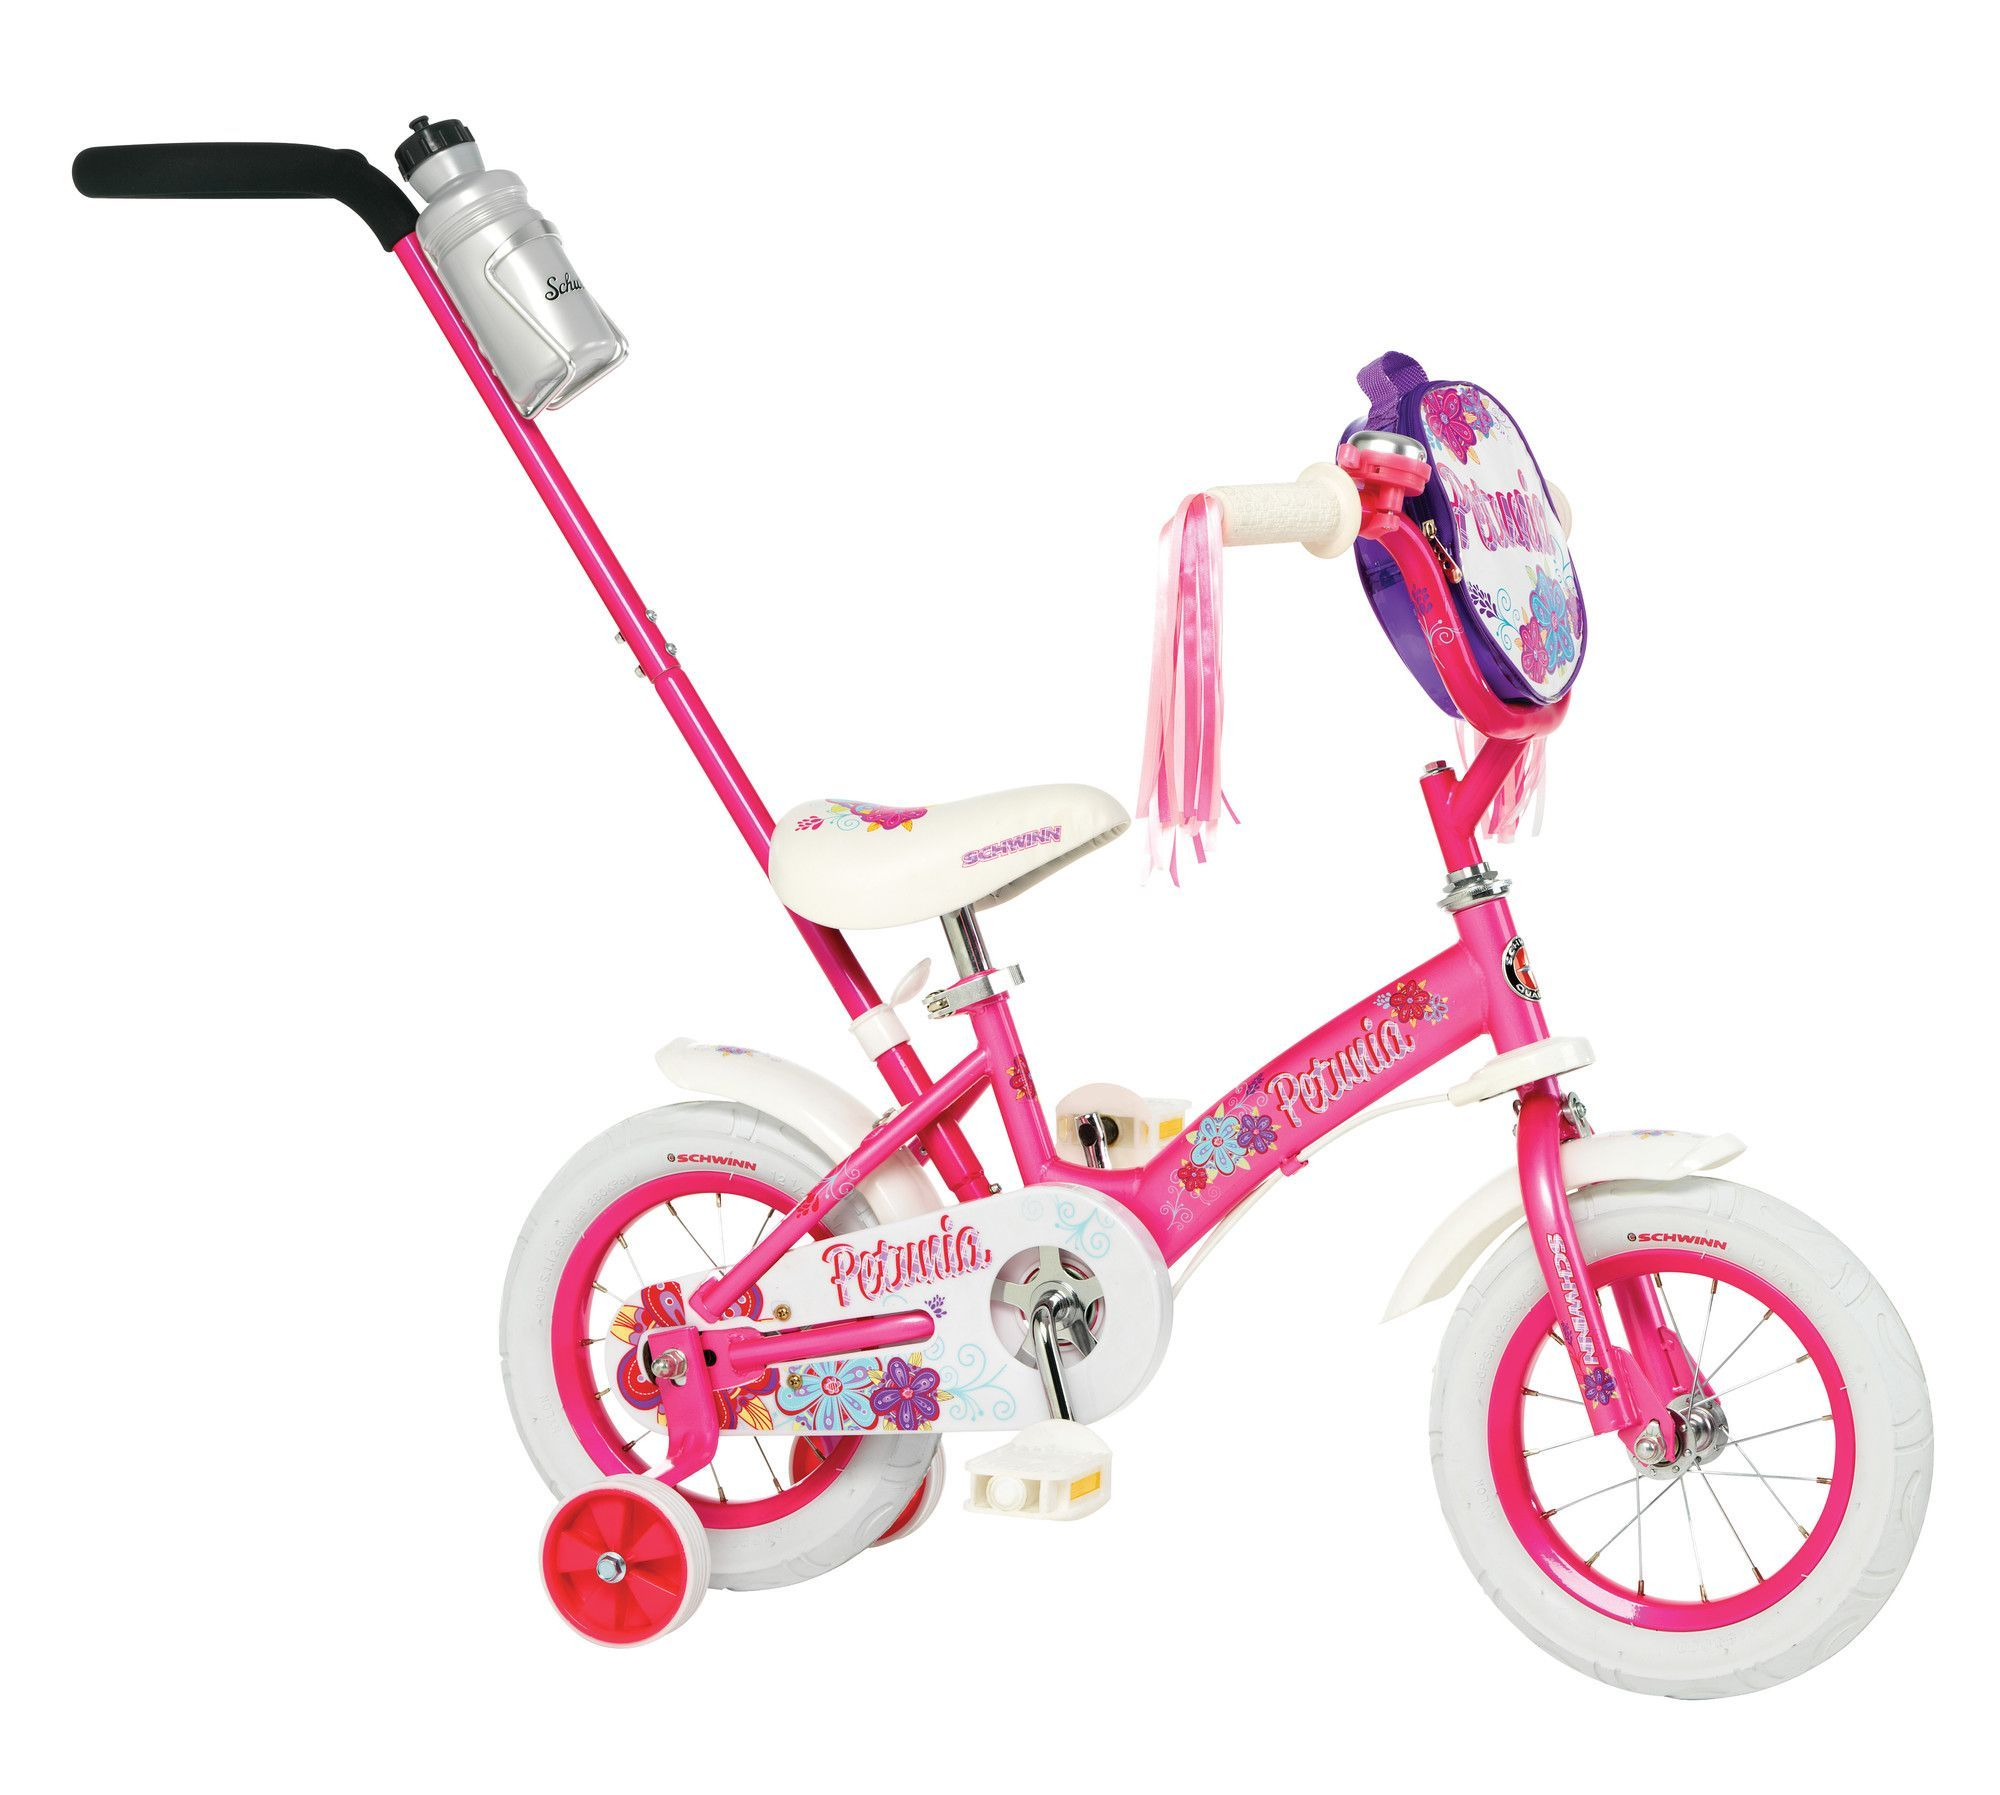 Schwinn Girl S Petunia 12 Bike With Push Handle Schwinn Schwinn Bike Bike With Training Wheels